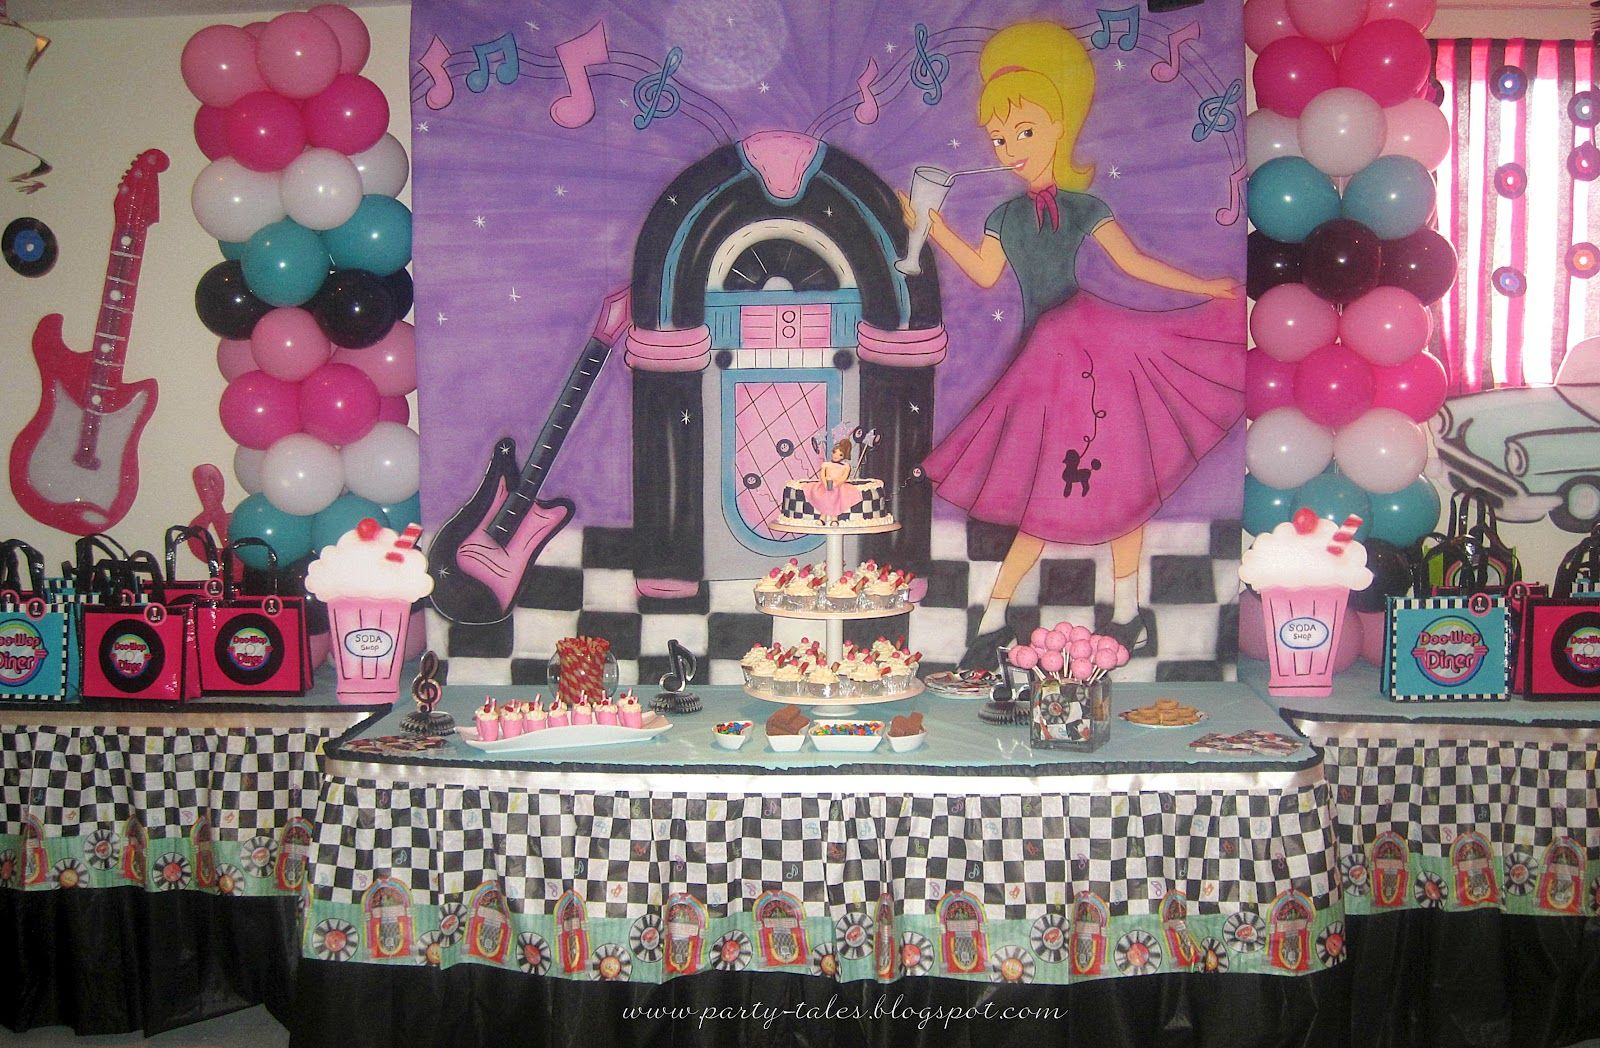 Sock Hop Decorations To Make | Party Tales: ~ Birthday Party ~ 50u0027s Diner